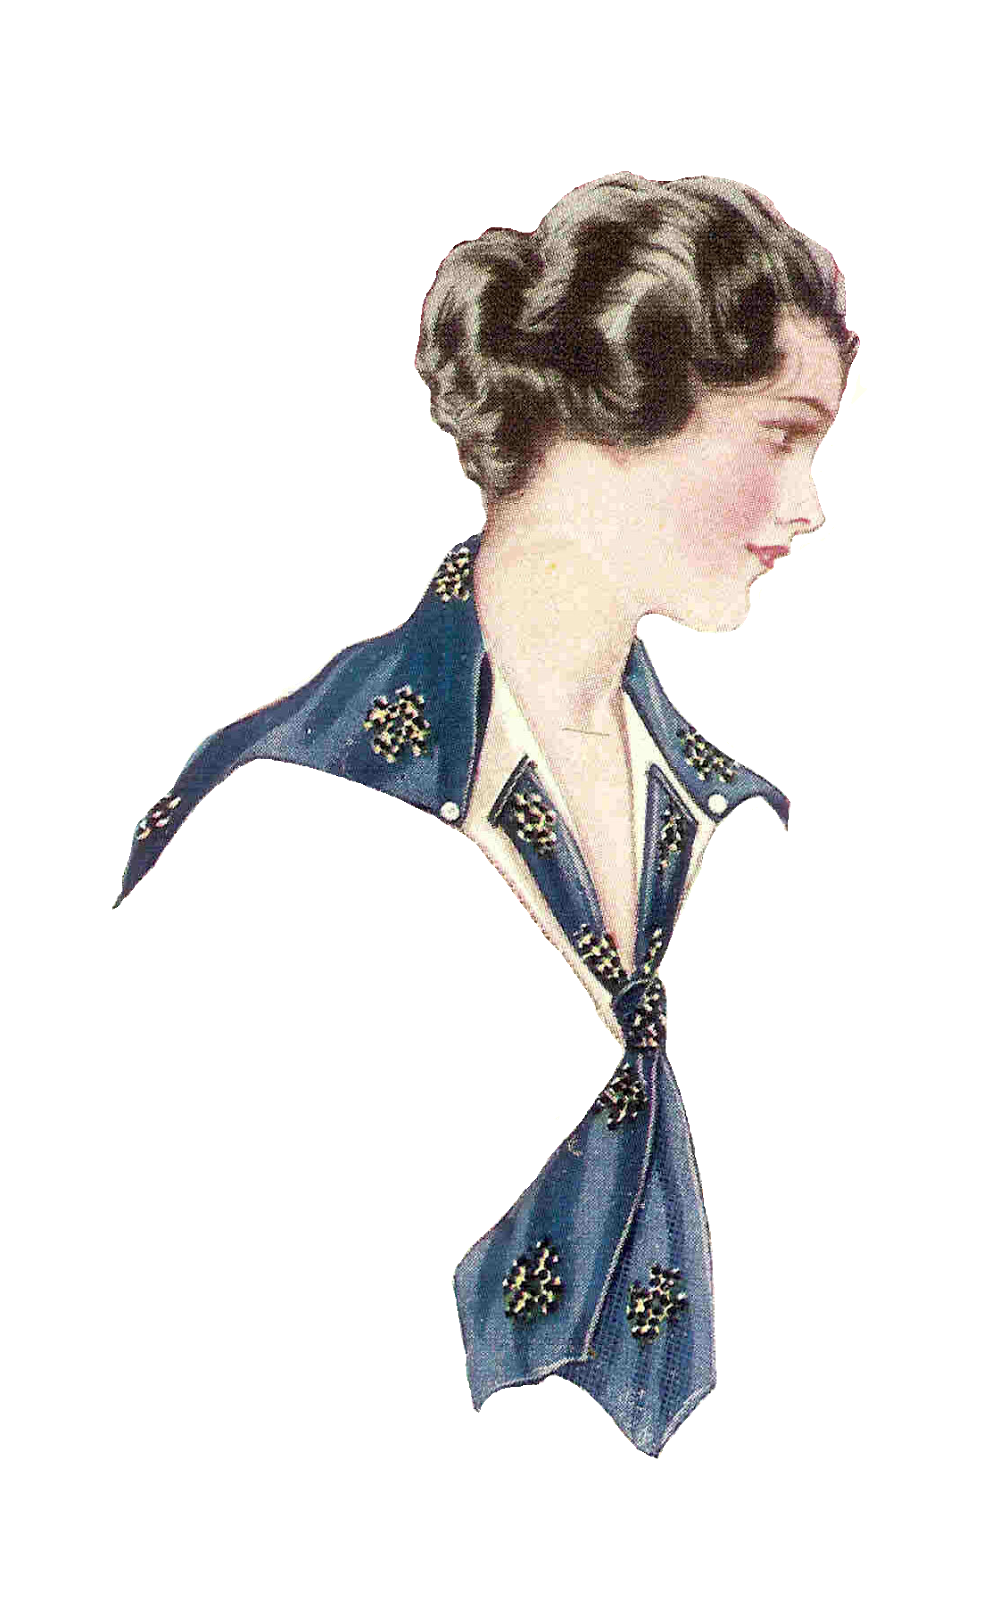 Antique Images: Free Fashion Clip Art: 2 Vintage Women's